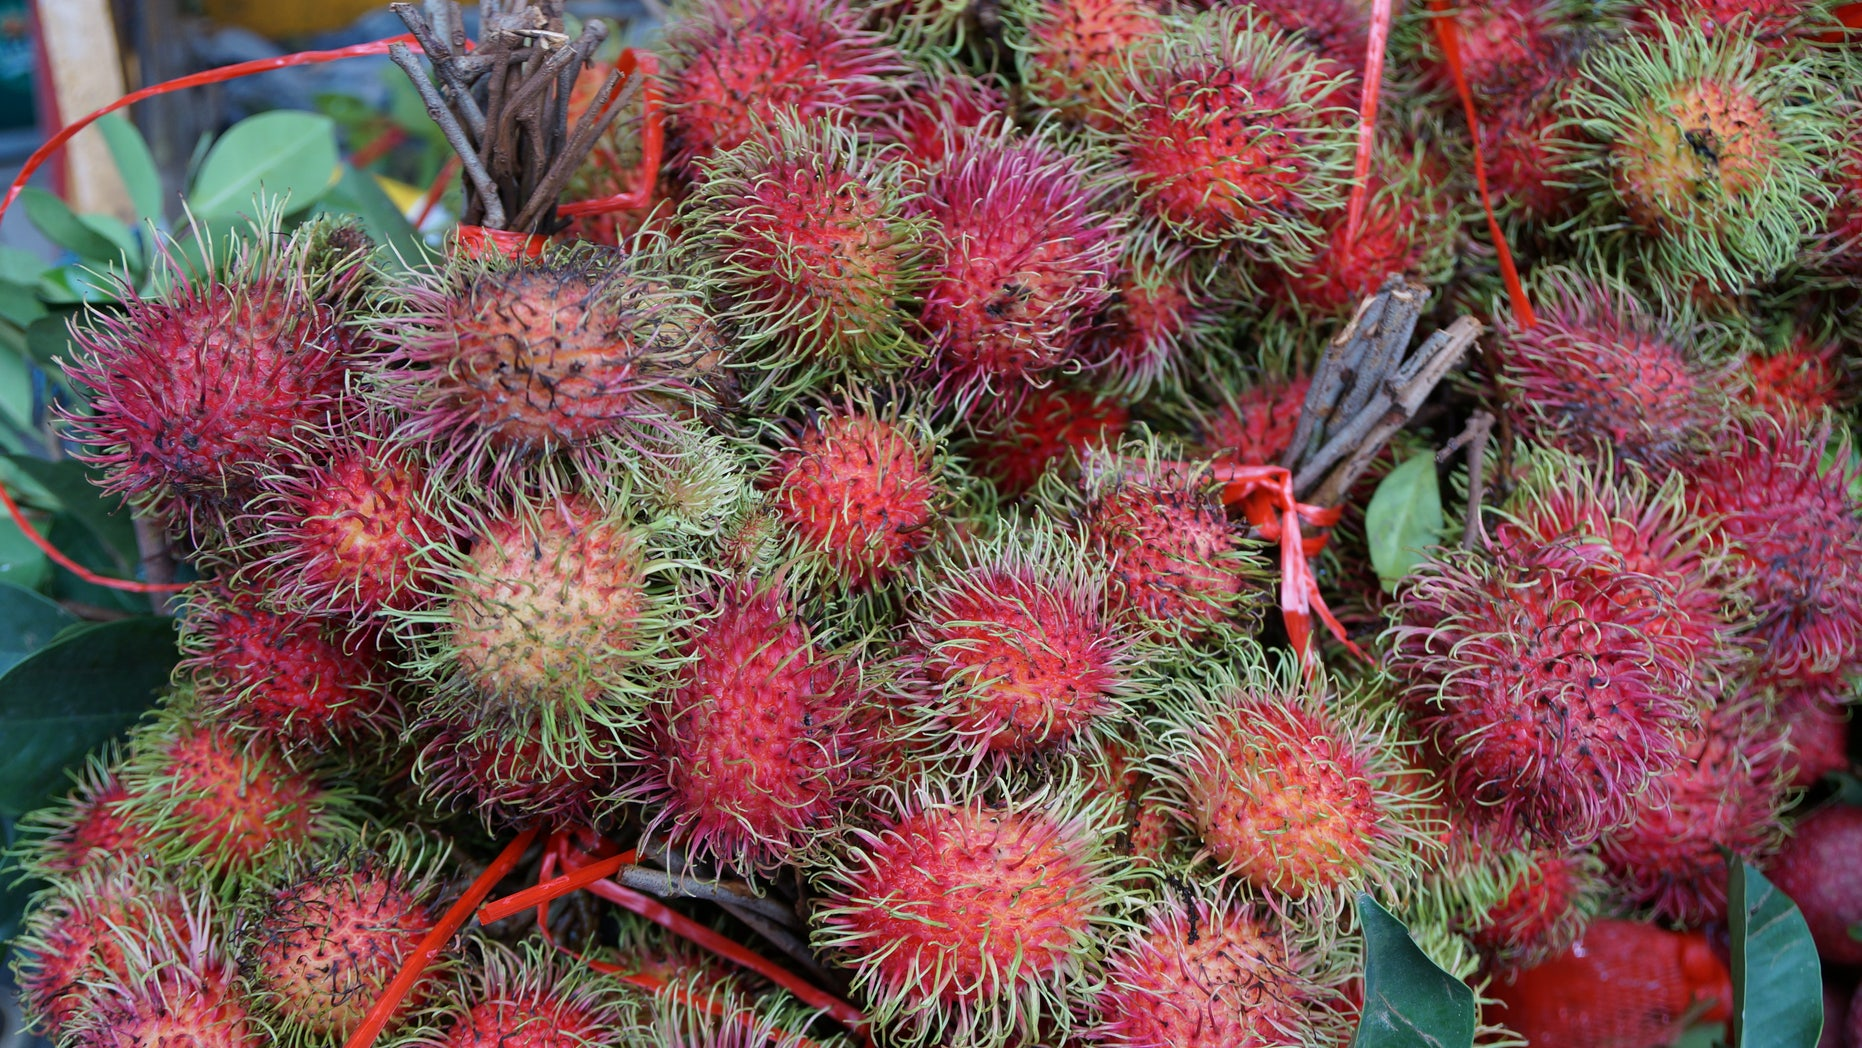 The rambutan fruit is both delicious and full of antioxidants. (Image courtesy of Chris Kilham)